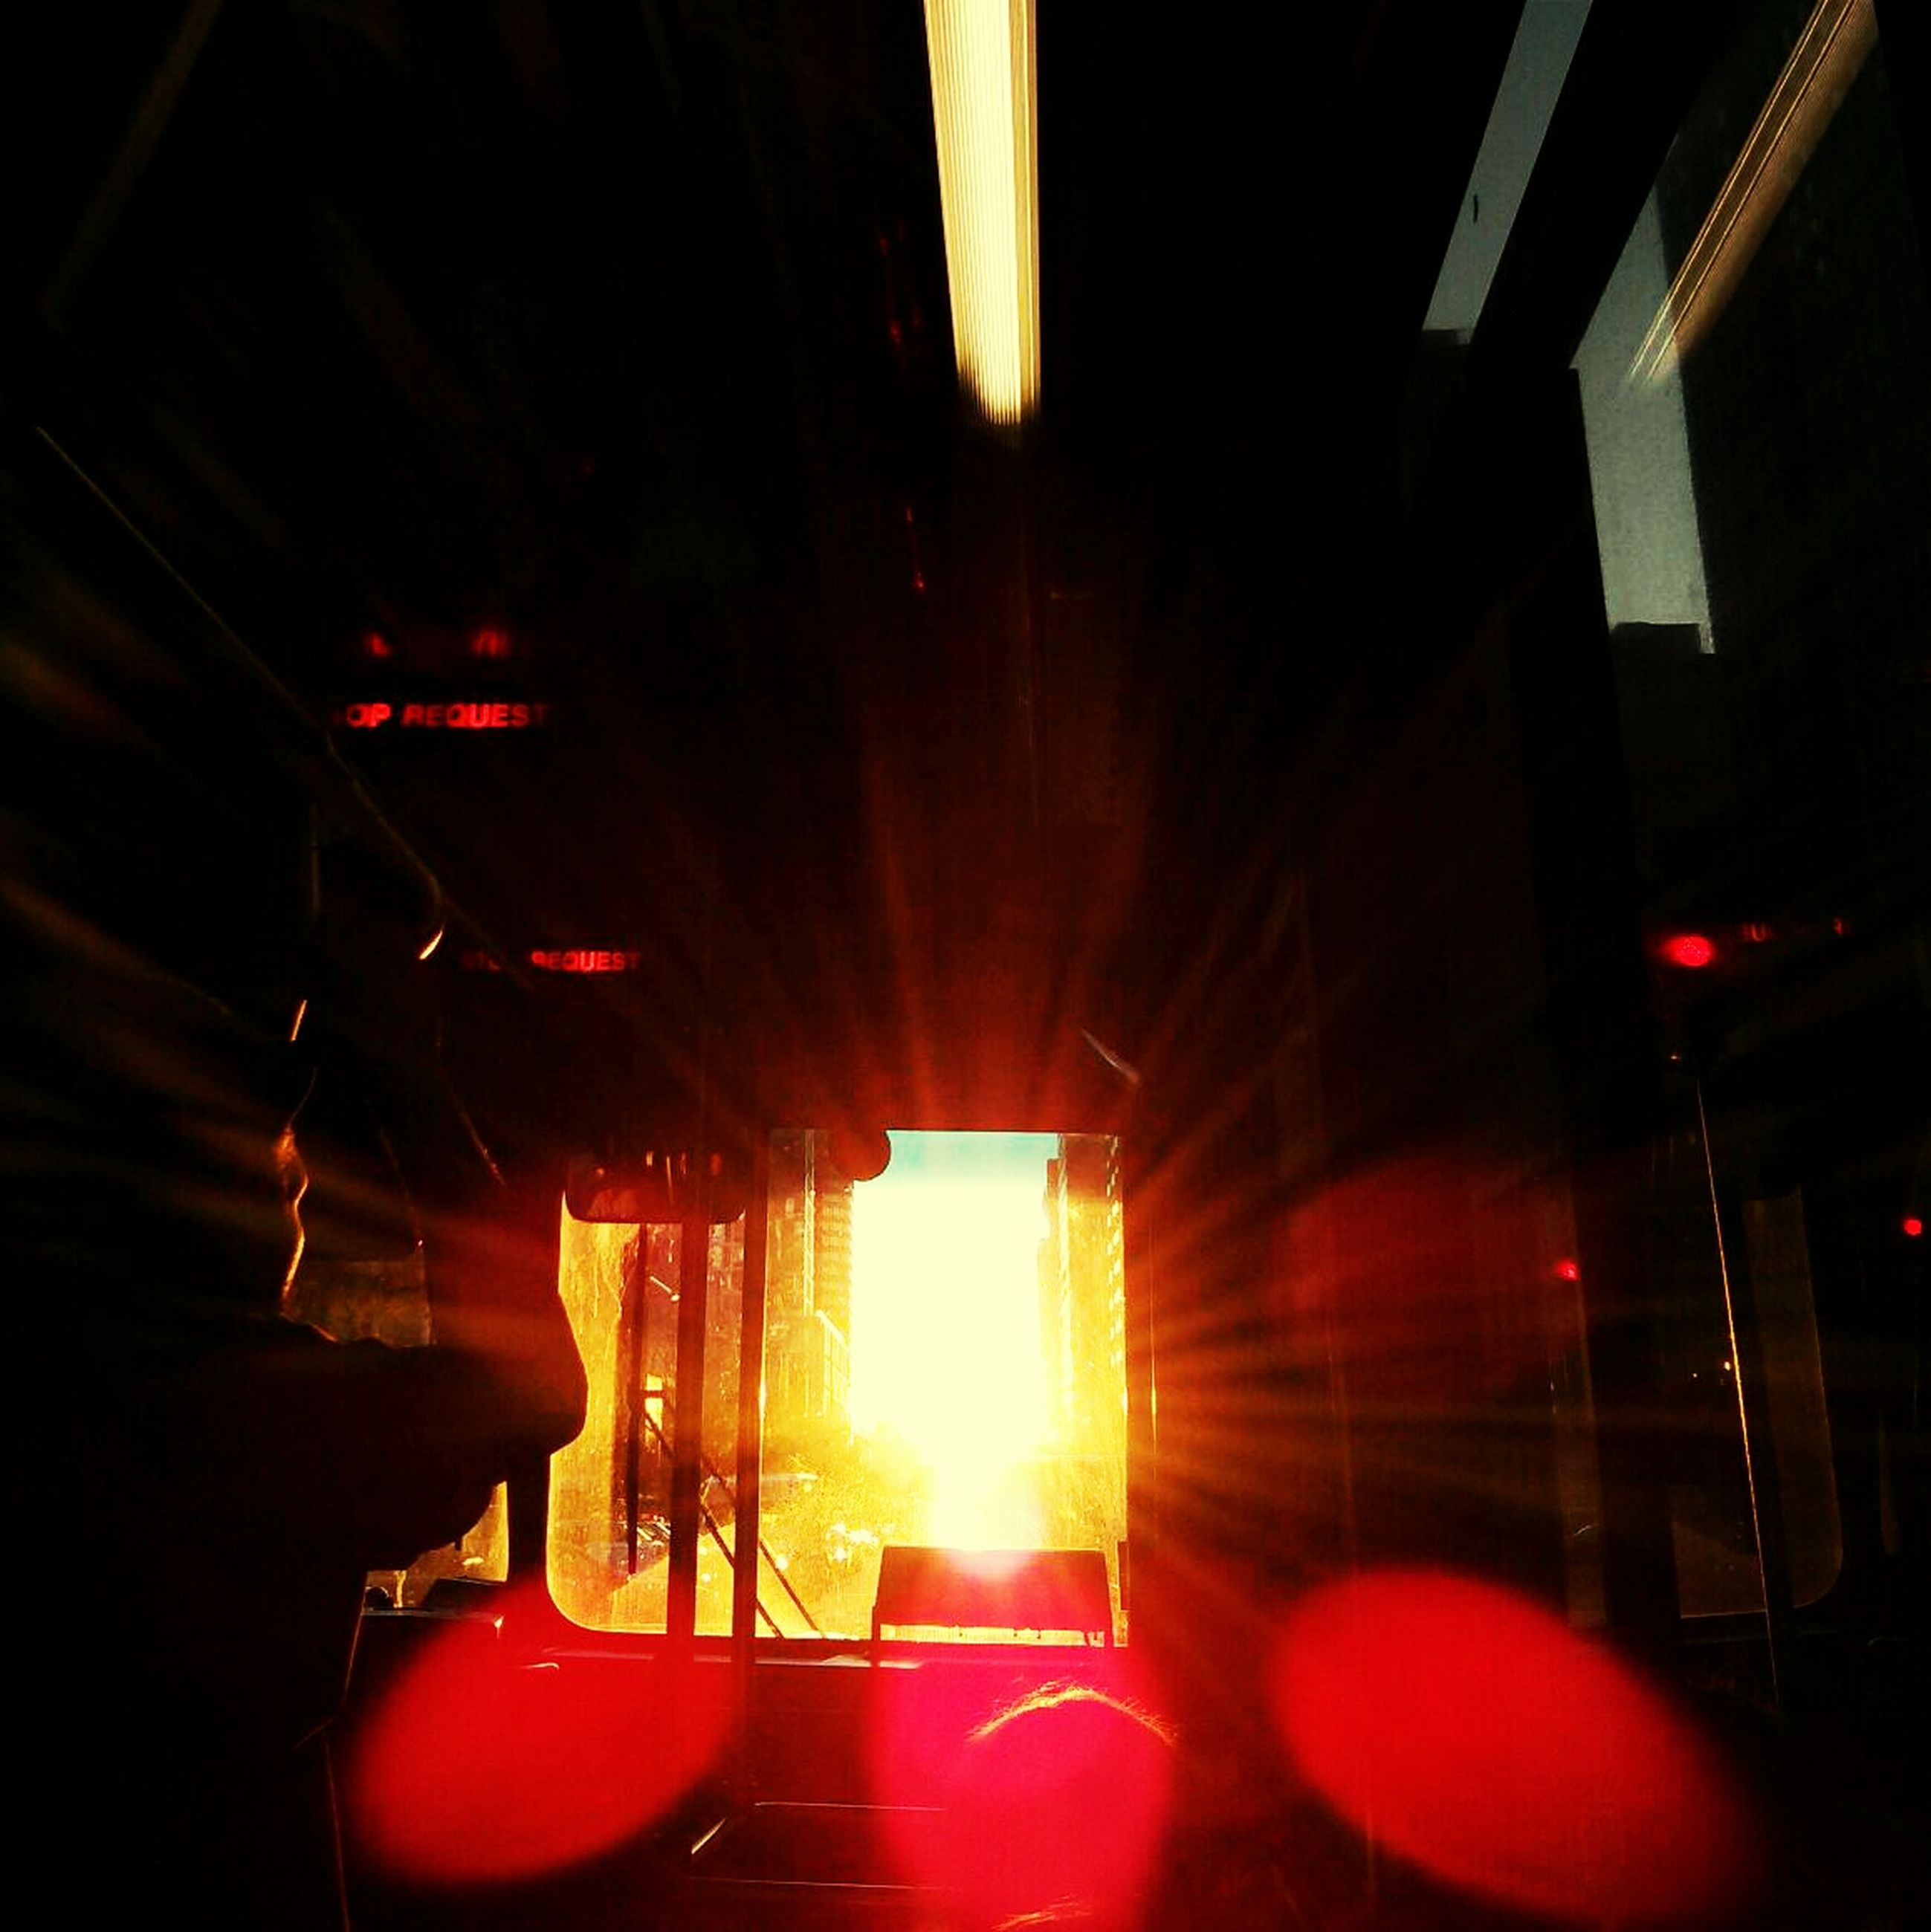 indoors, illuminated, lighting equipment, transportation, ceiling, dark, night, interior, built structure, sunlight, low angle view, architecture, light - natural phenomenon, window, no people, glowing, mode of transport, glass - material, in a row, hanging